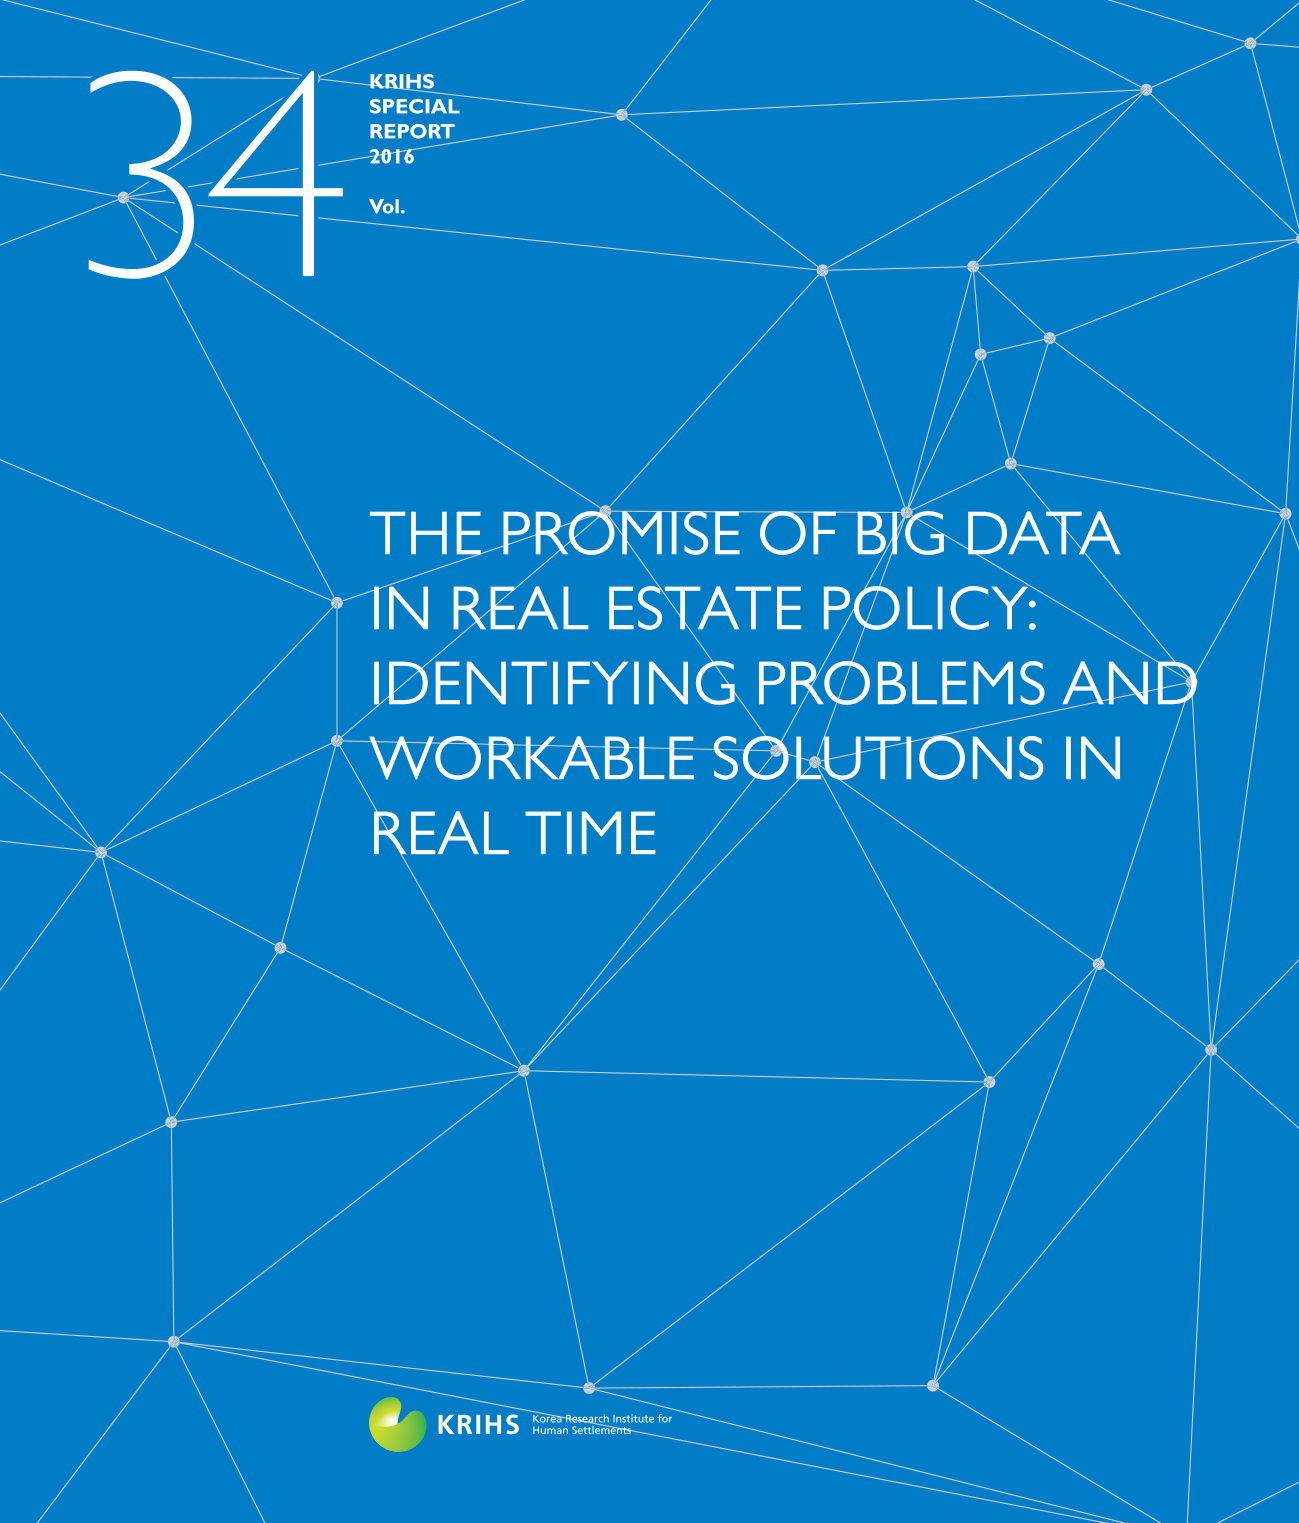 [KRIHS SPECIAL REPORT 34] THE PROMISE OF BIG DATA IN REAL ESTATE POLICY: IDENTIFYING PROBLEMS AND WORKABLE SOLUTIONS IN REAL TIME표지